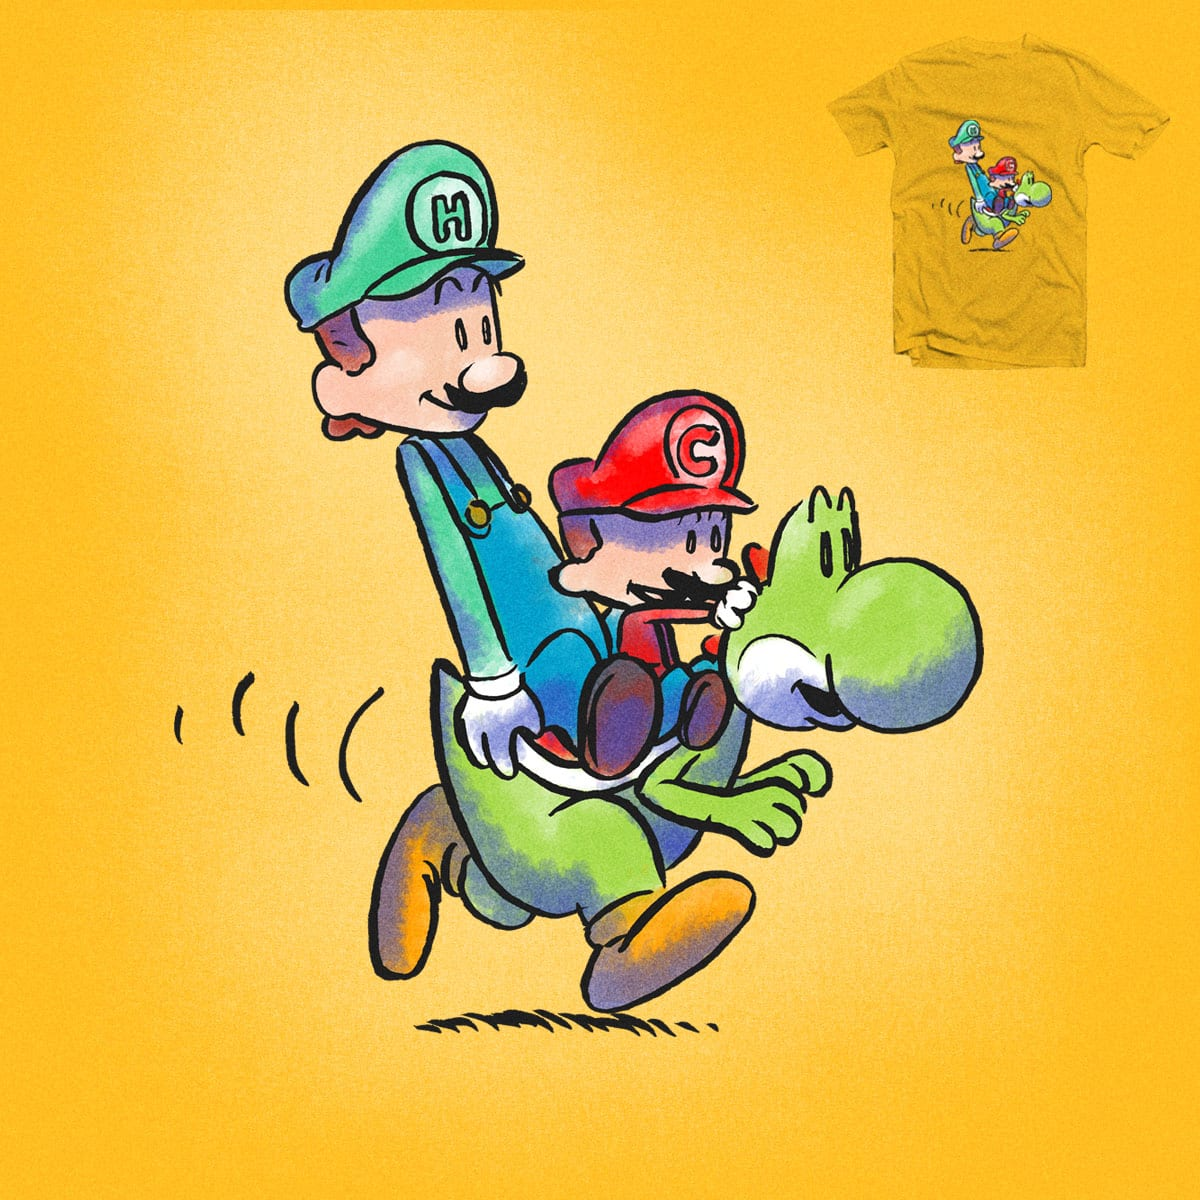 It's a-me, Calvin? by nerrik and goliath72 on Threadless